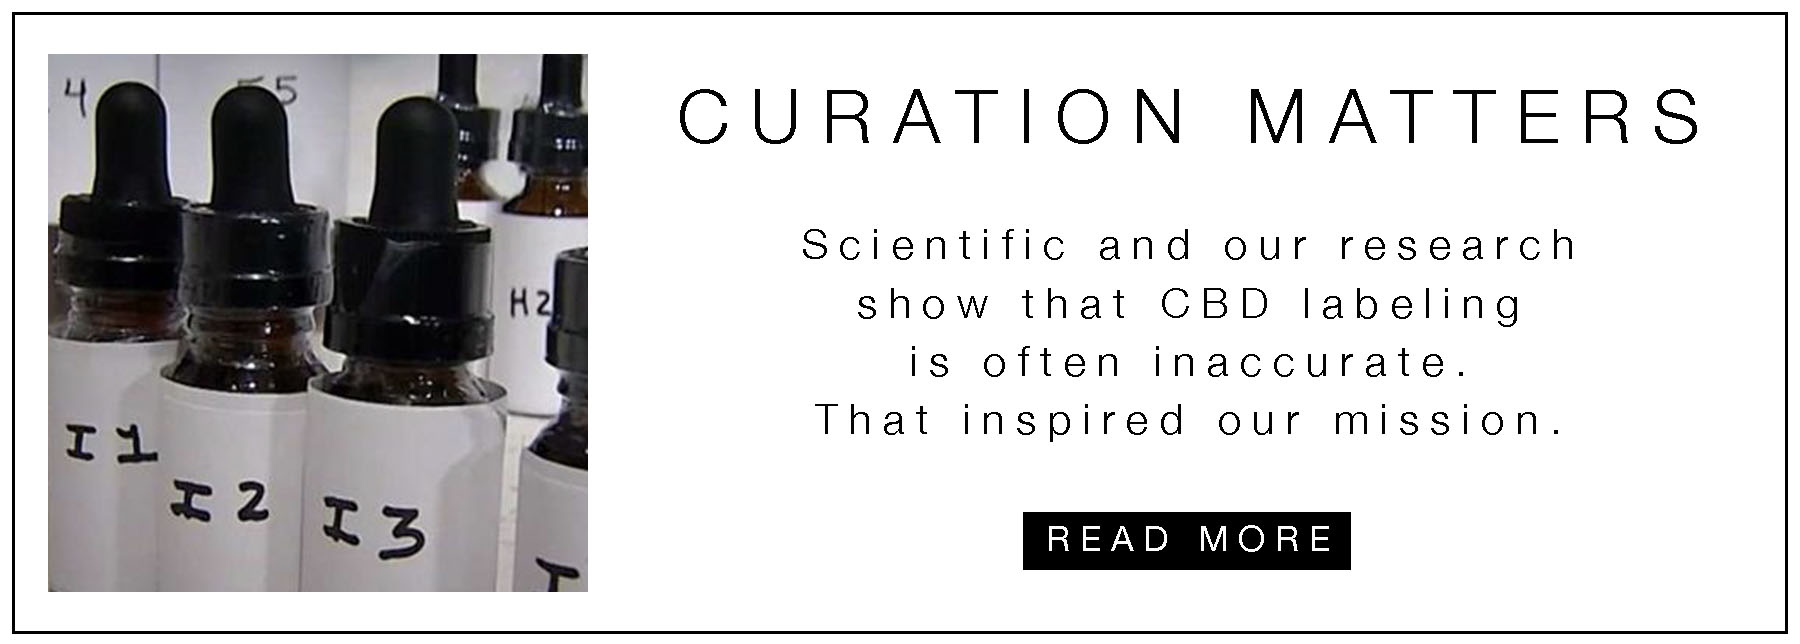 CURATION MATTERS BANNER.png